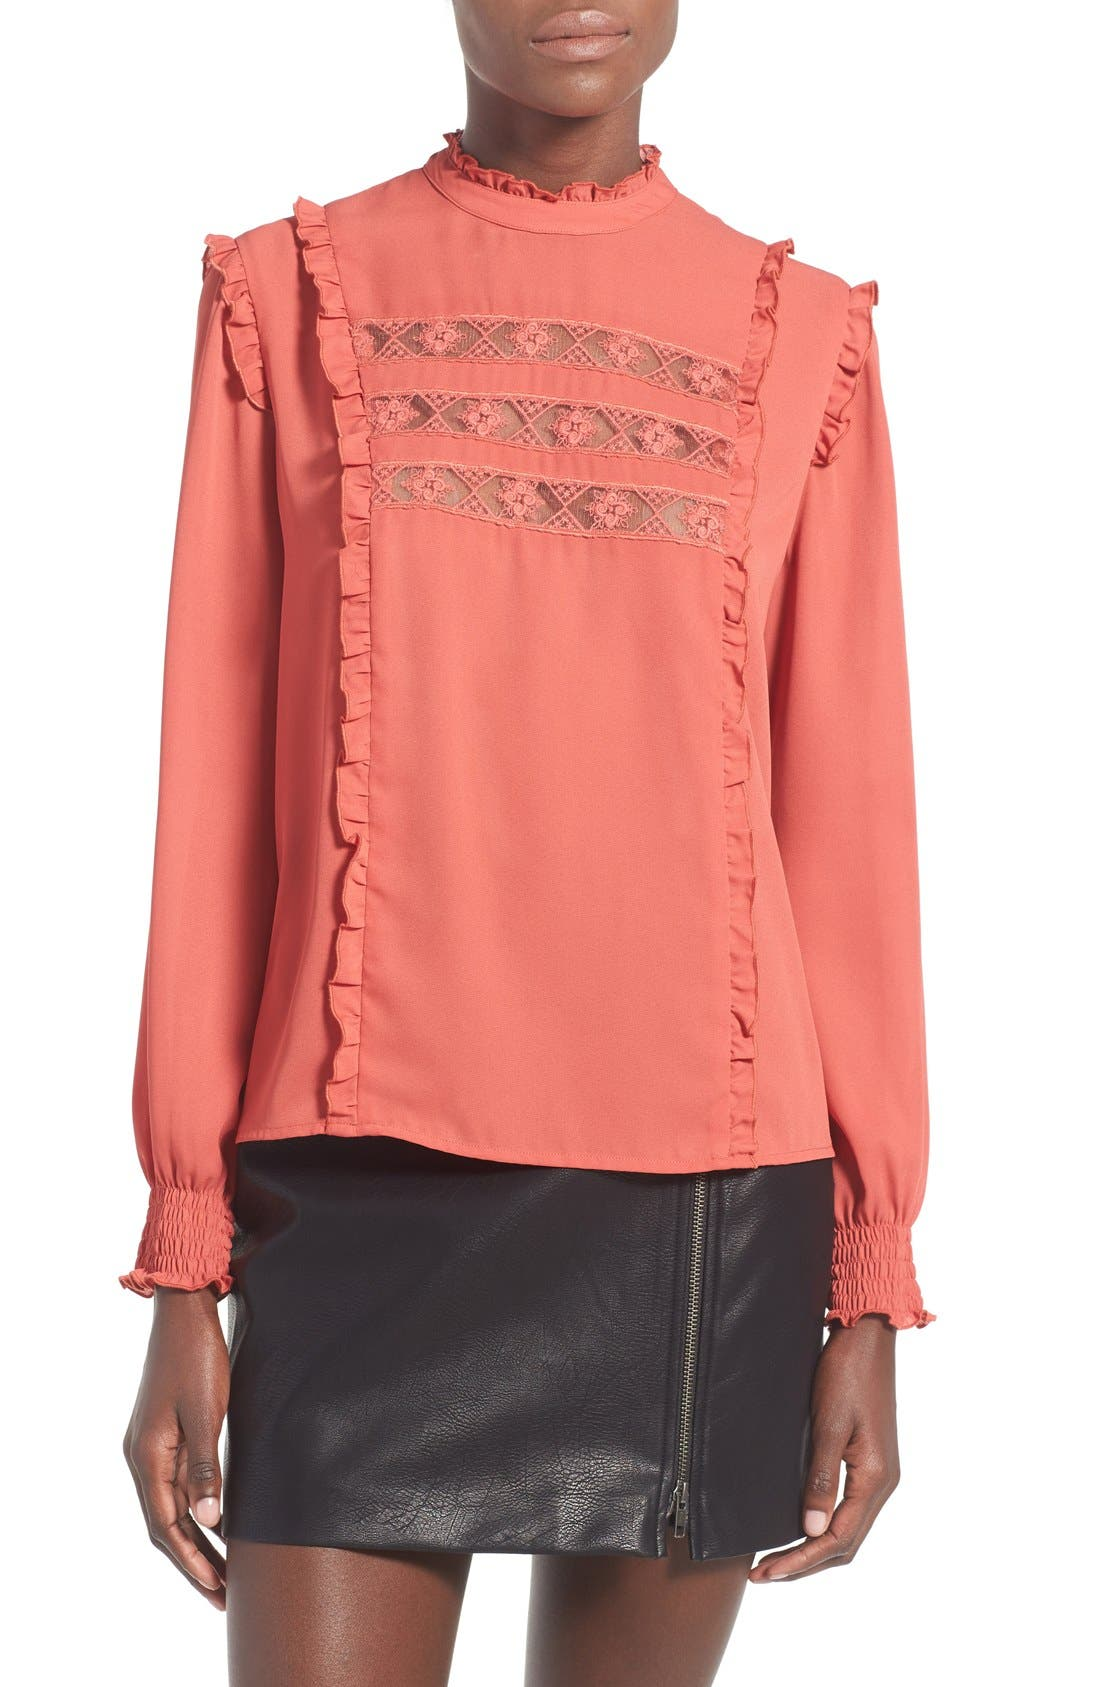 Alternate Image 1 Selected - WAYF 'Westin' Lace Peasant Top